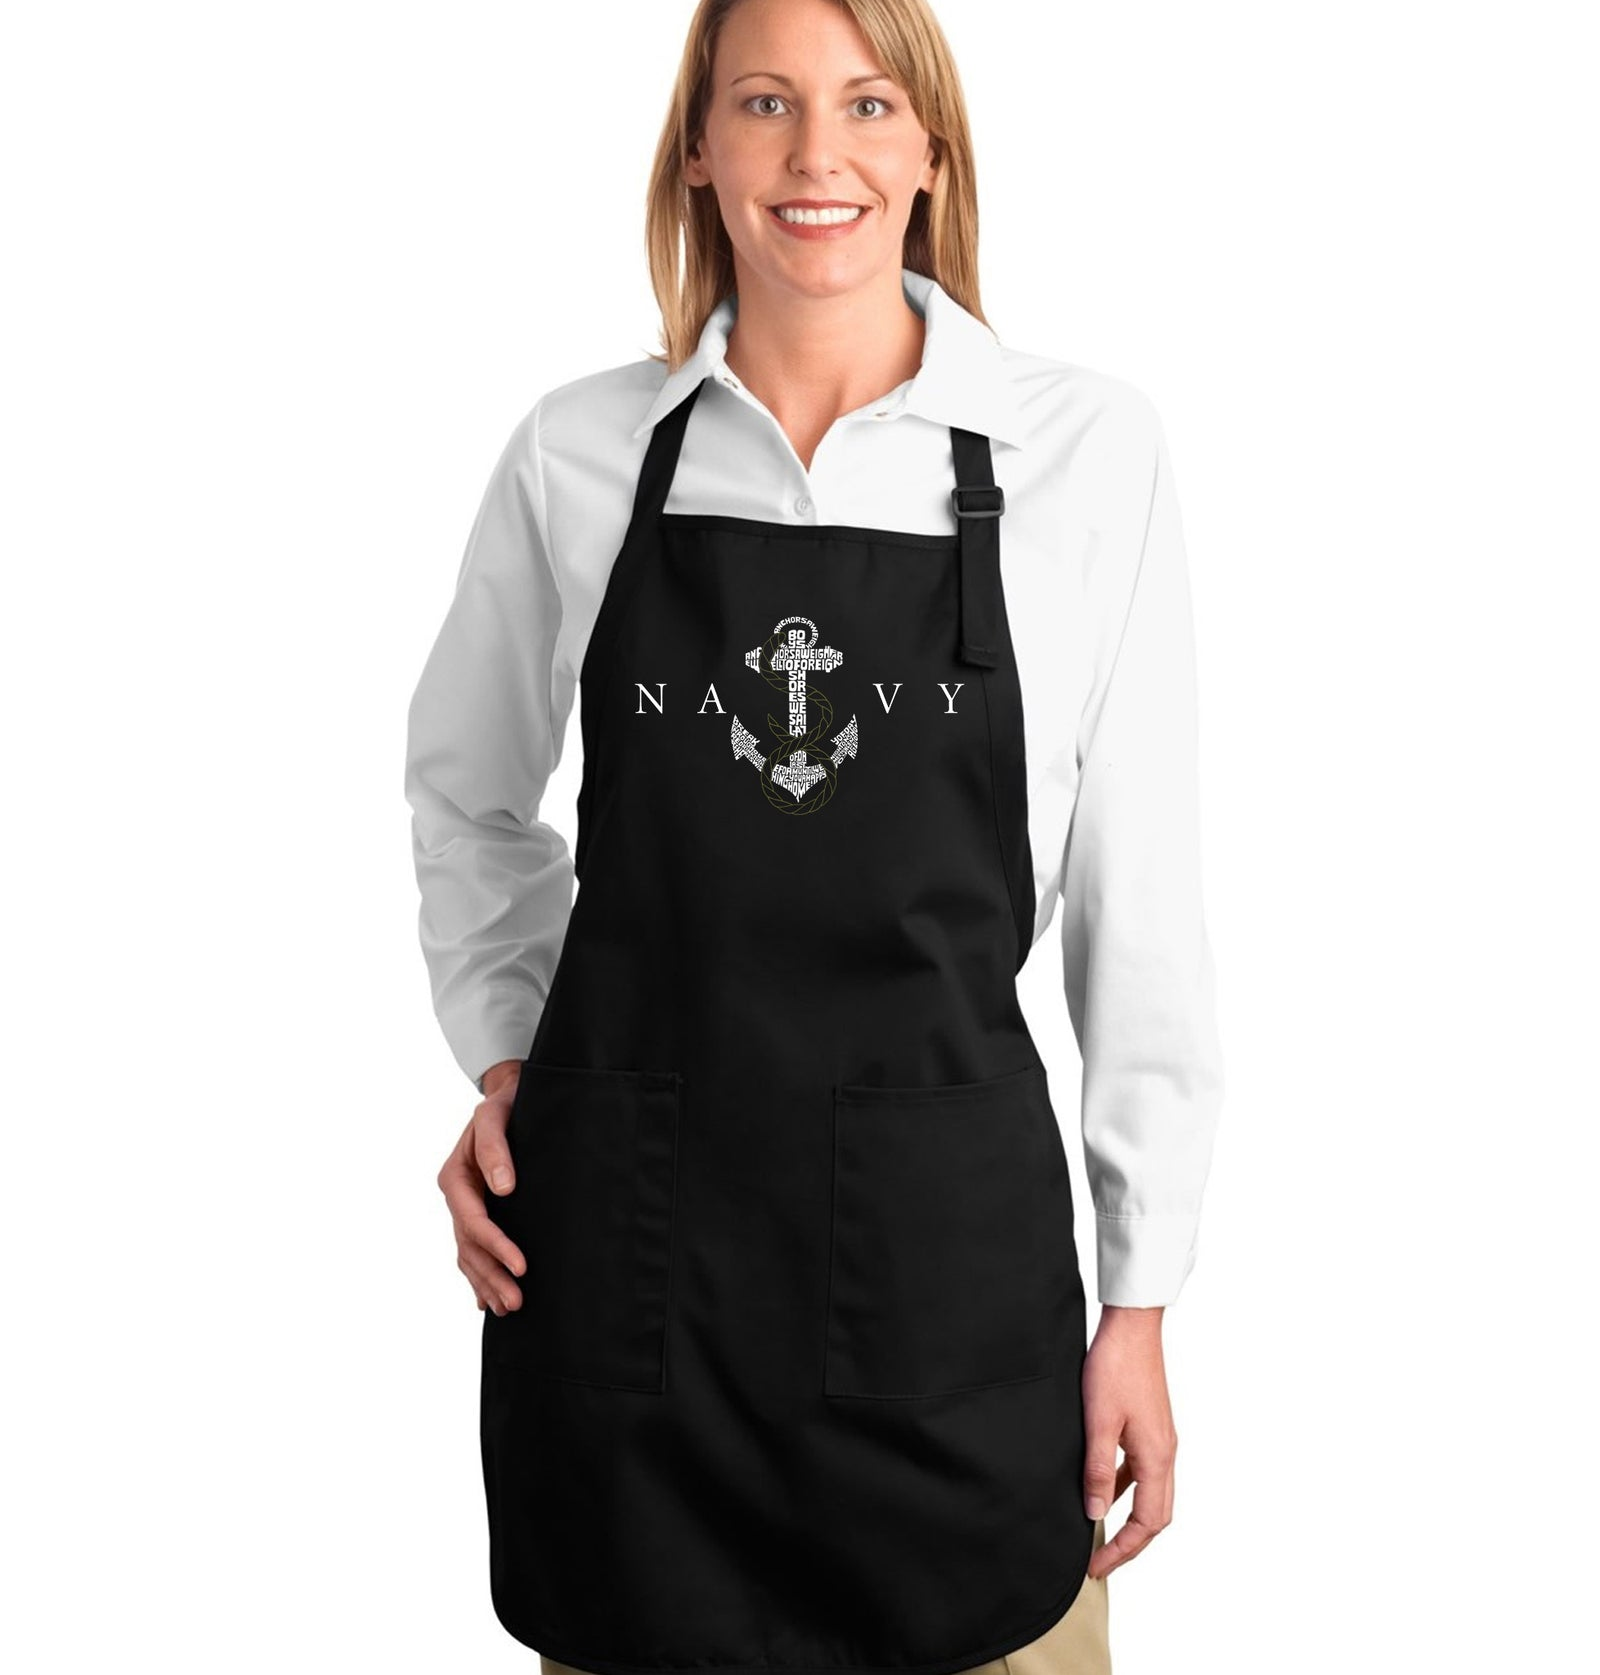 Full Length Apron - LYRICS TO ANCHORS AWEIGH